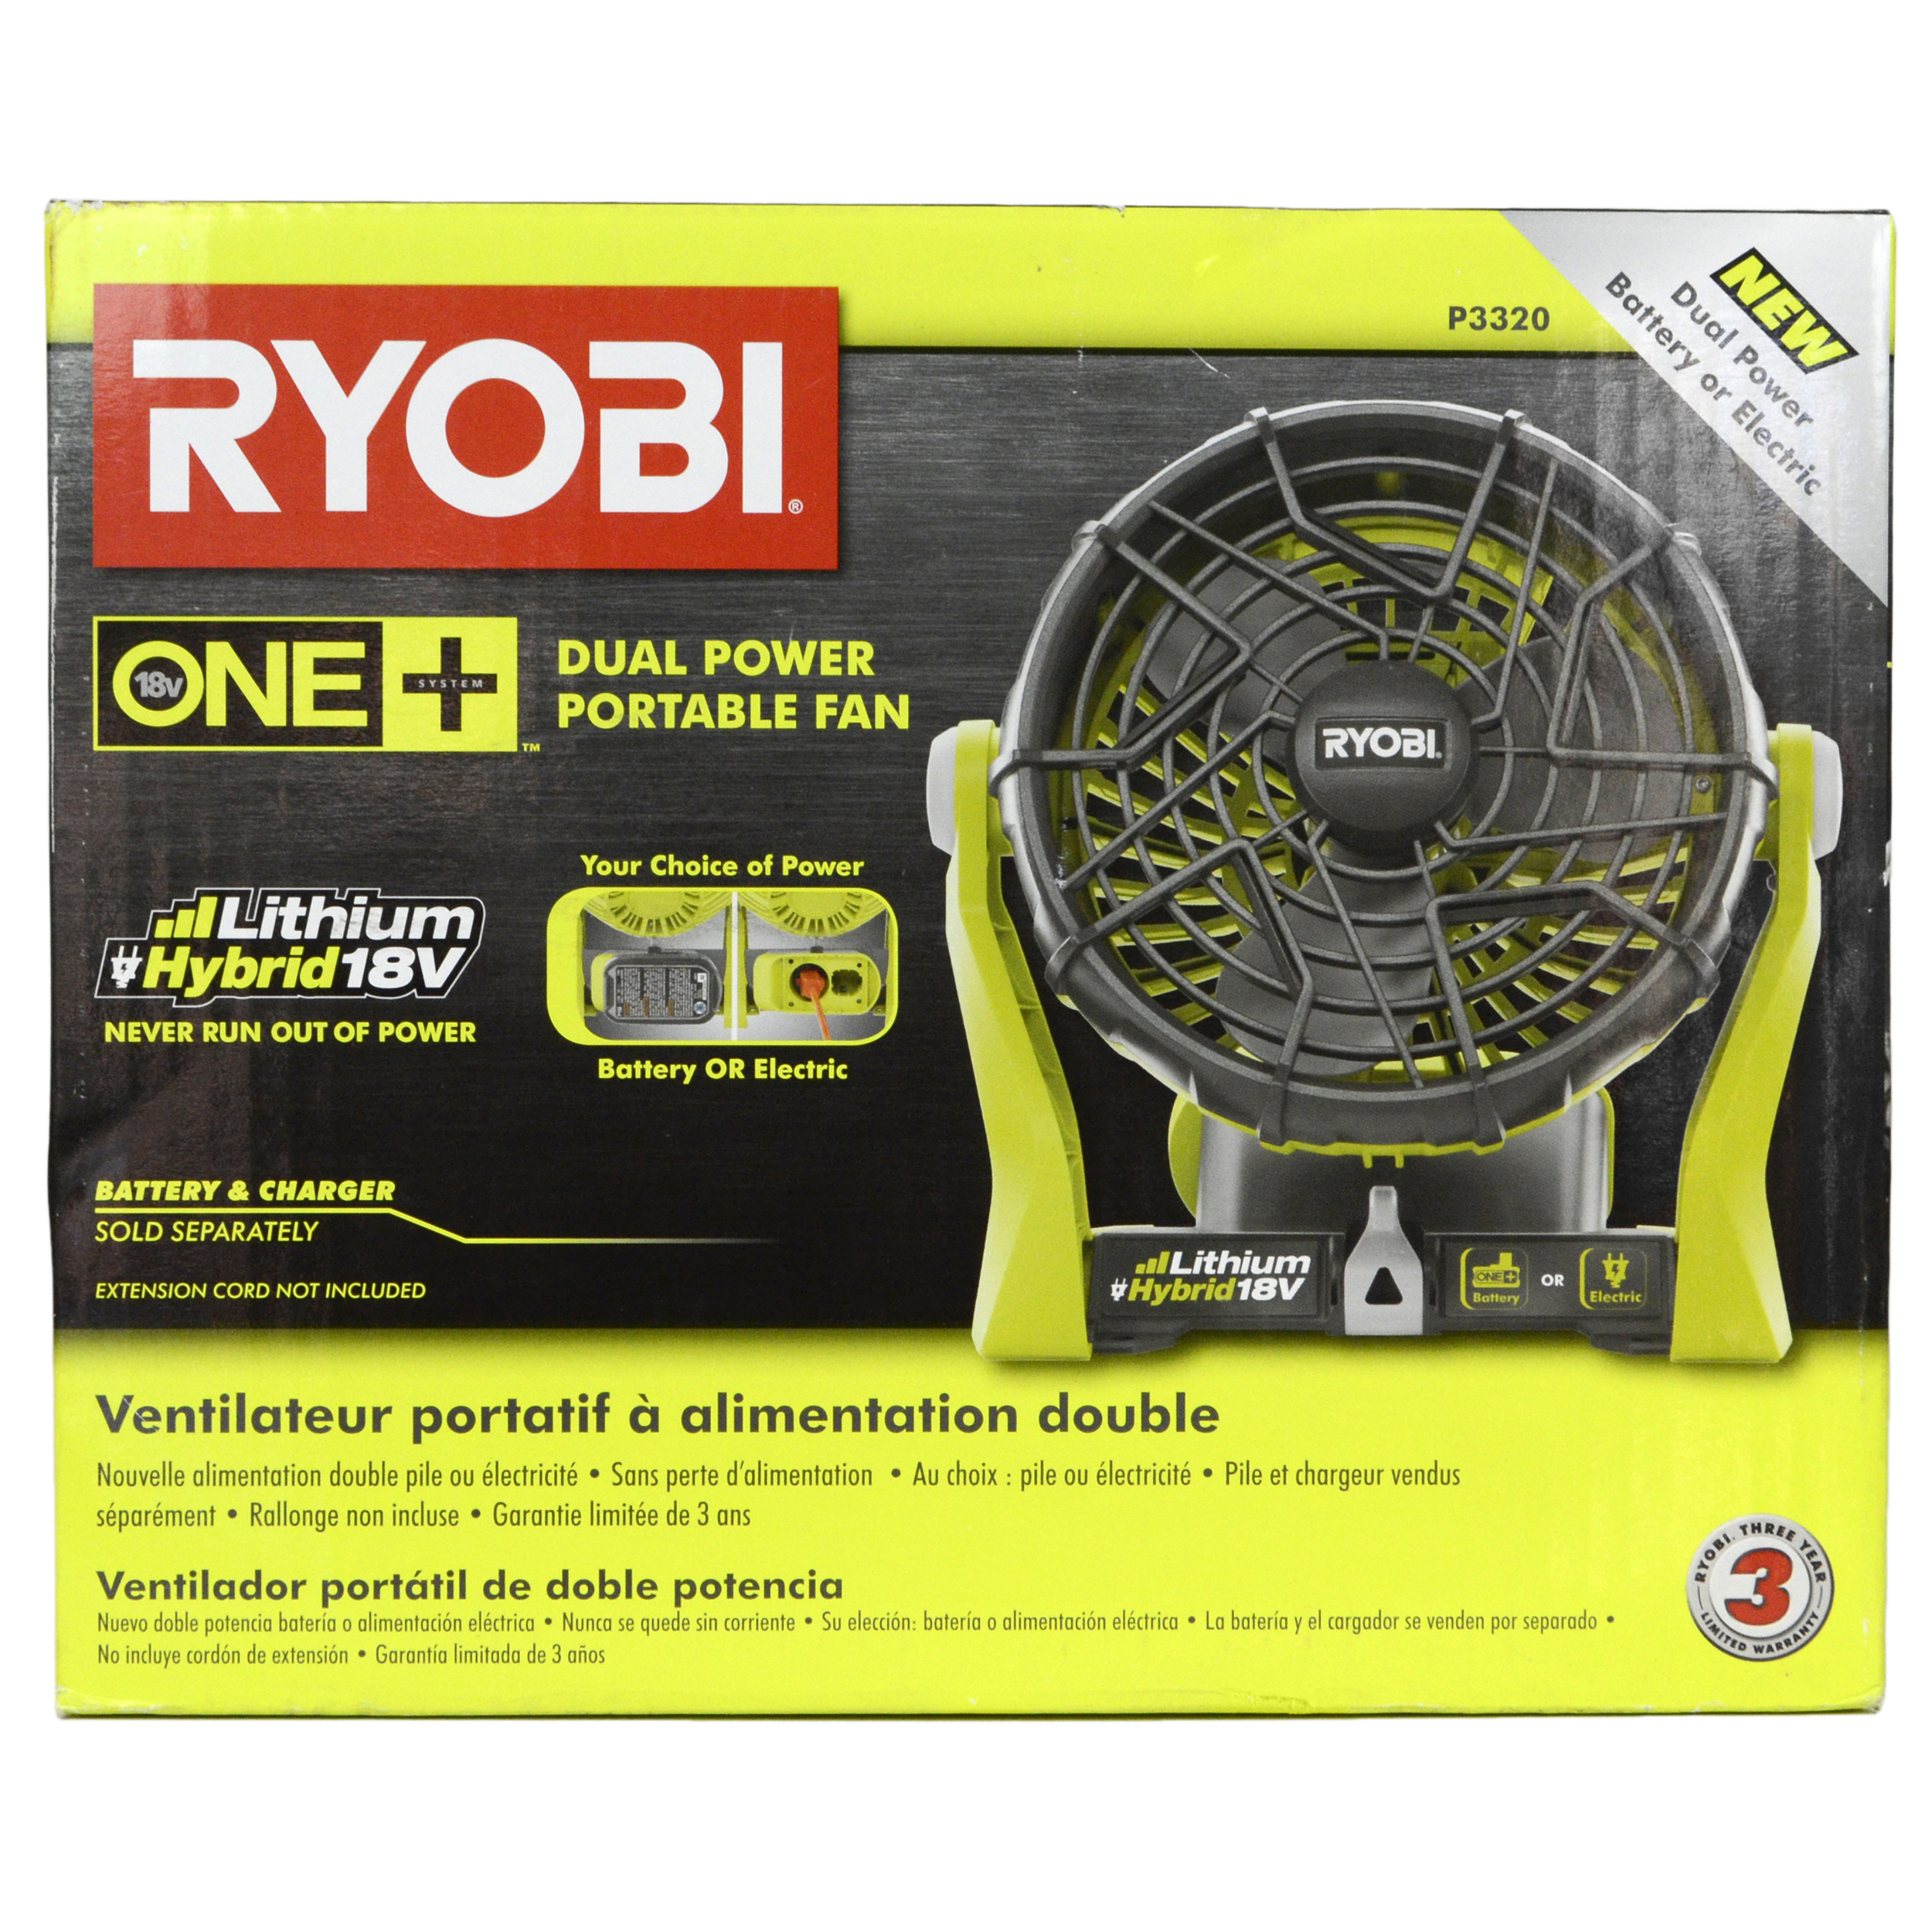 Ryobi Garage Door Fan Ryobi P3320 120v Ac Or 18v One Dual Power Portable Hybrid